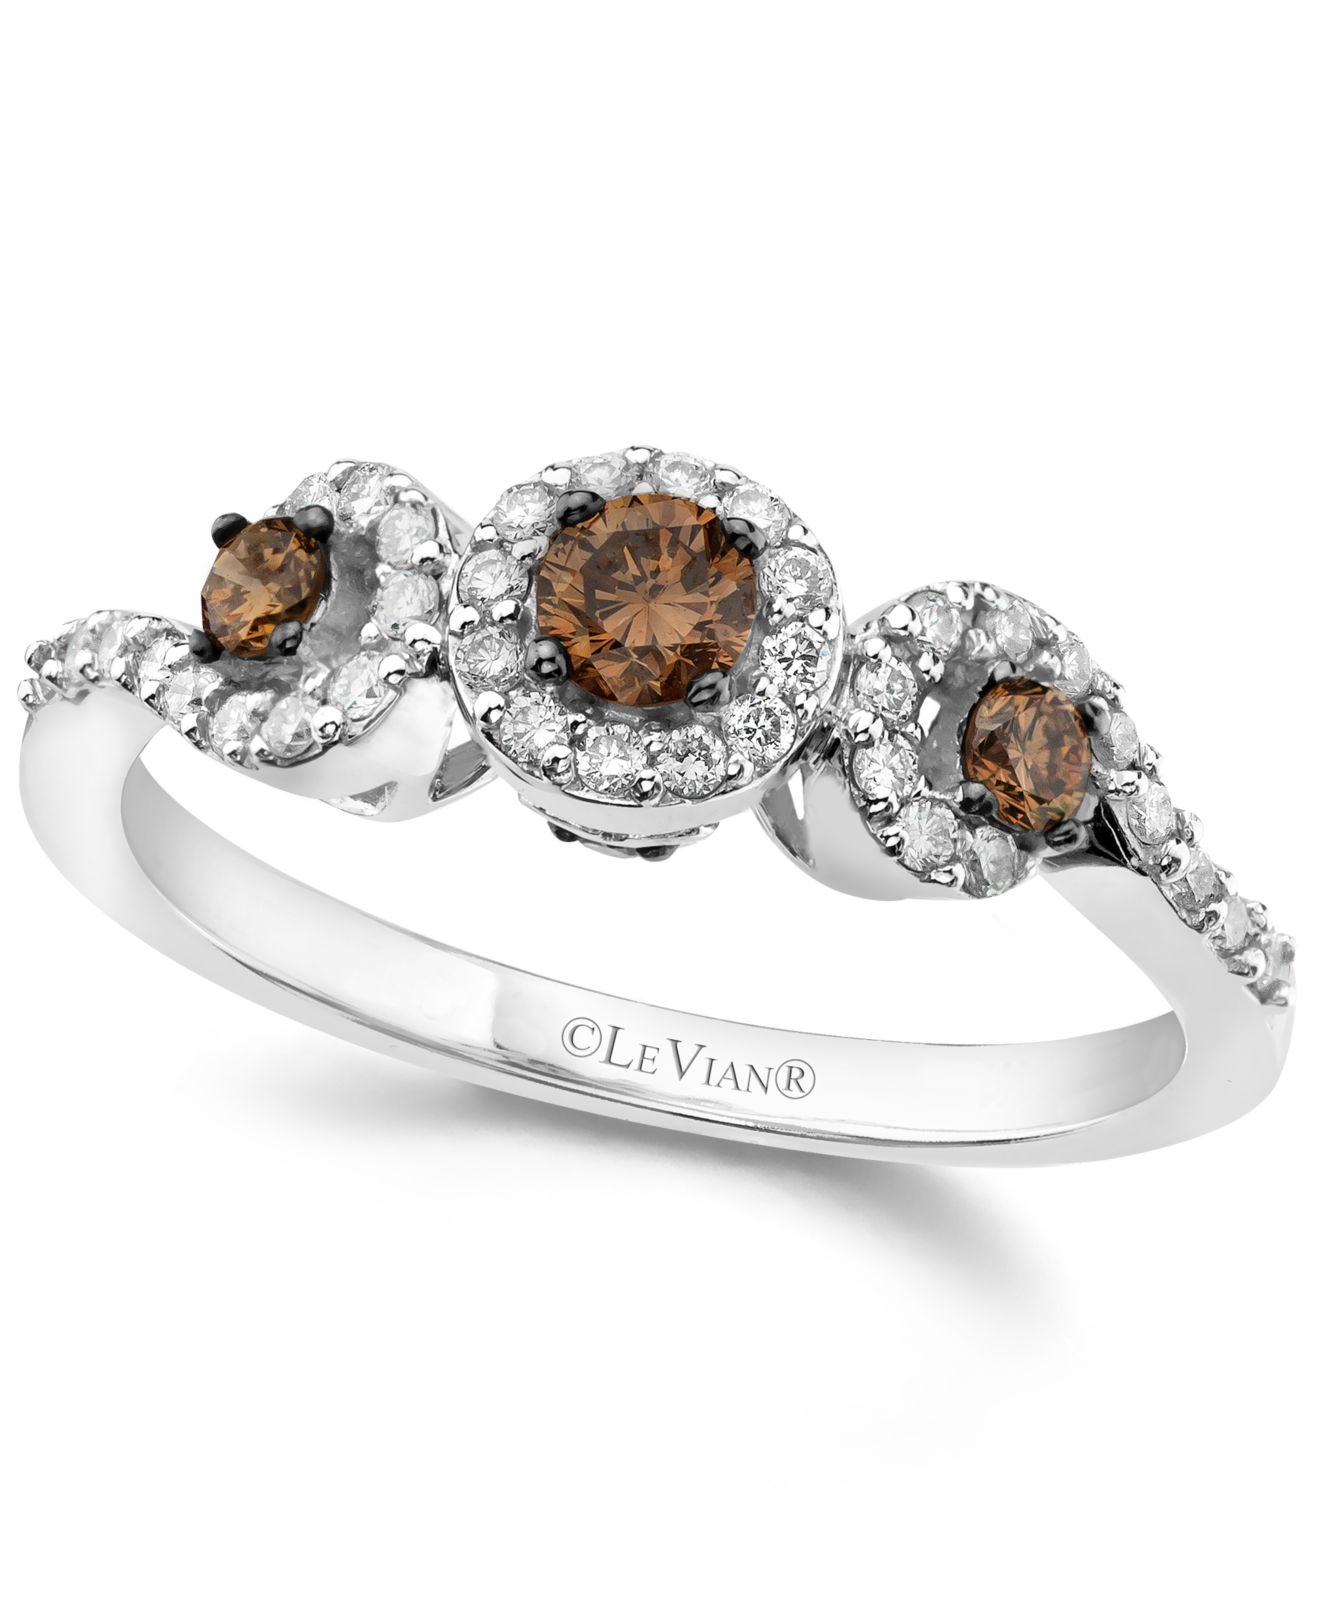 c66fe5184cbc7f Gallery. Previously sold at: Macy's · Women's Le Vian Chocolate Diamonds ...